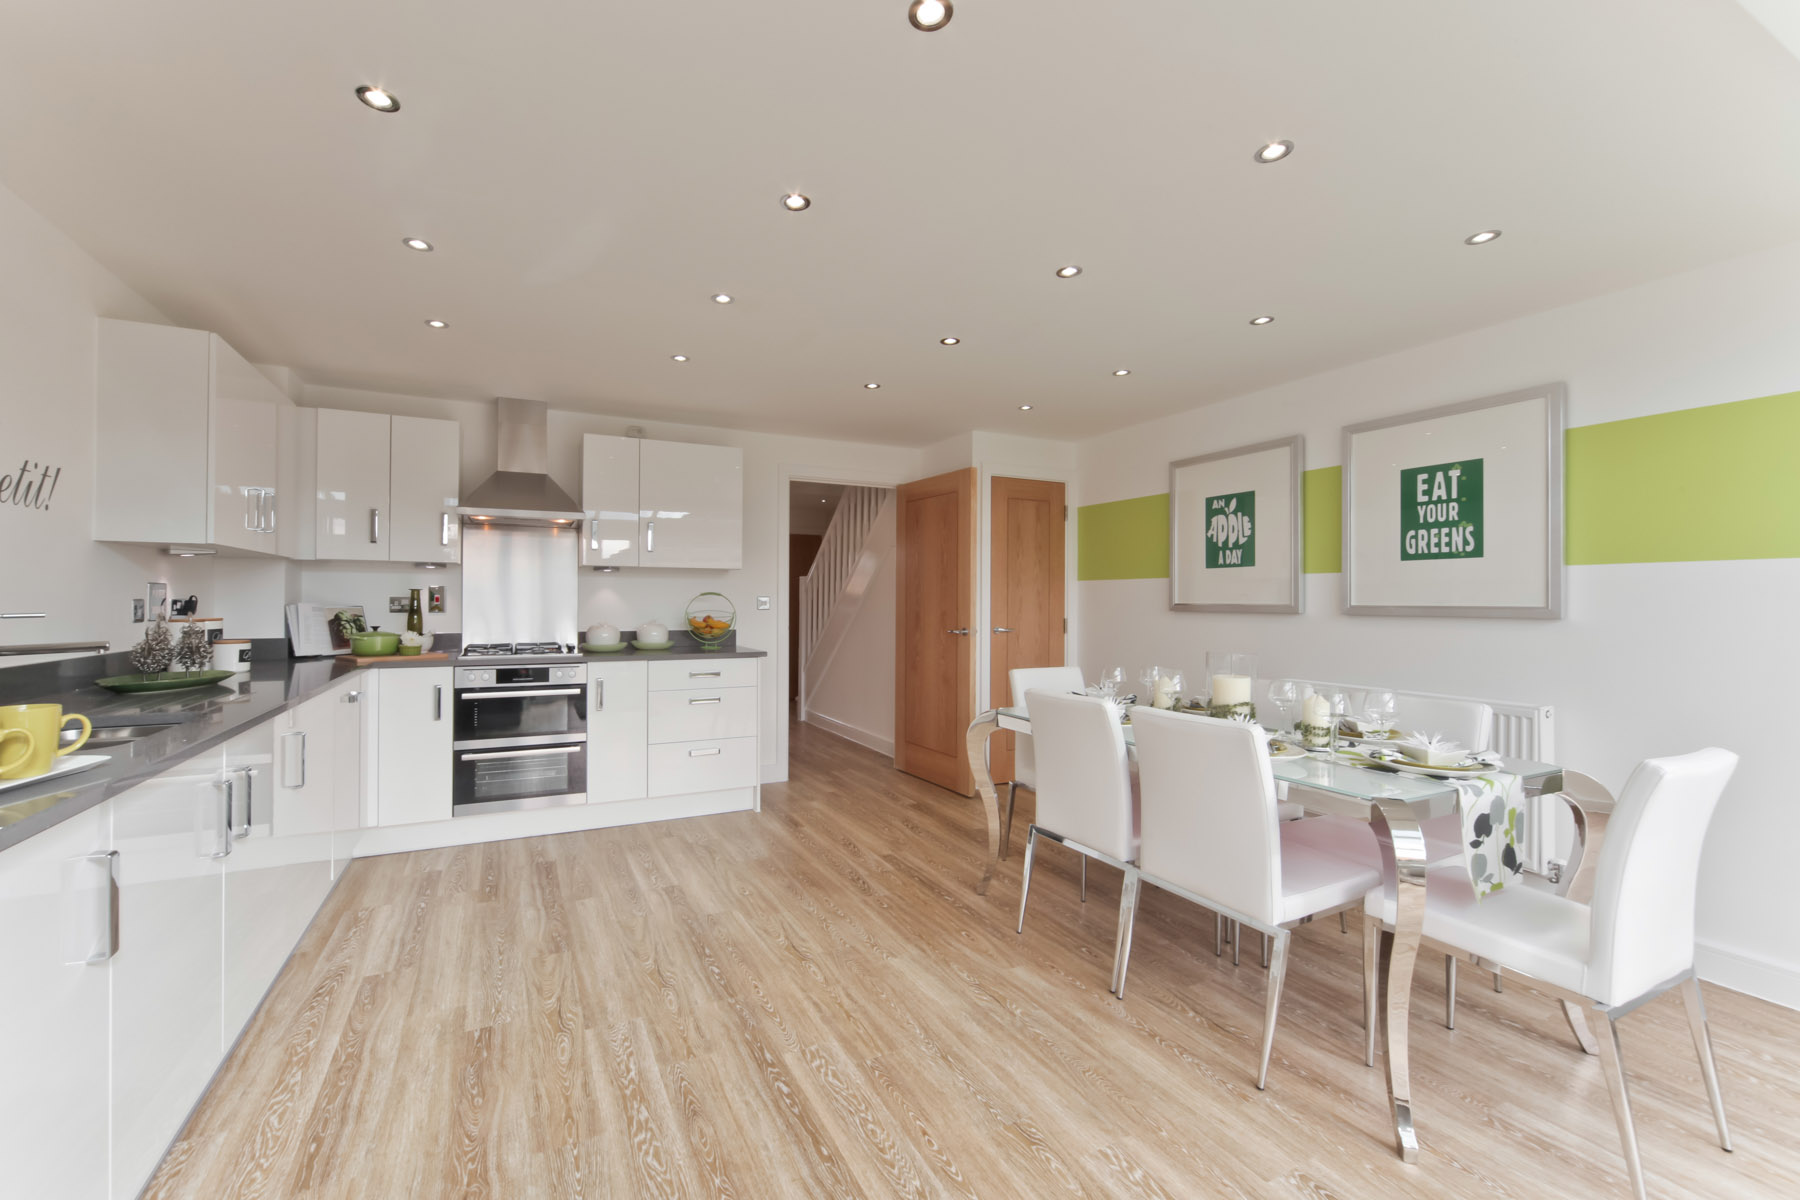 A Typical Taylor Wimpey Kitchen Dining Area